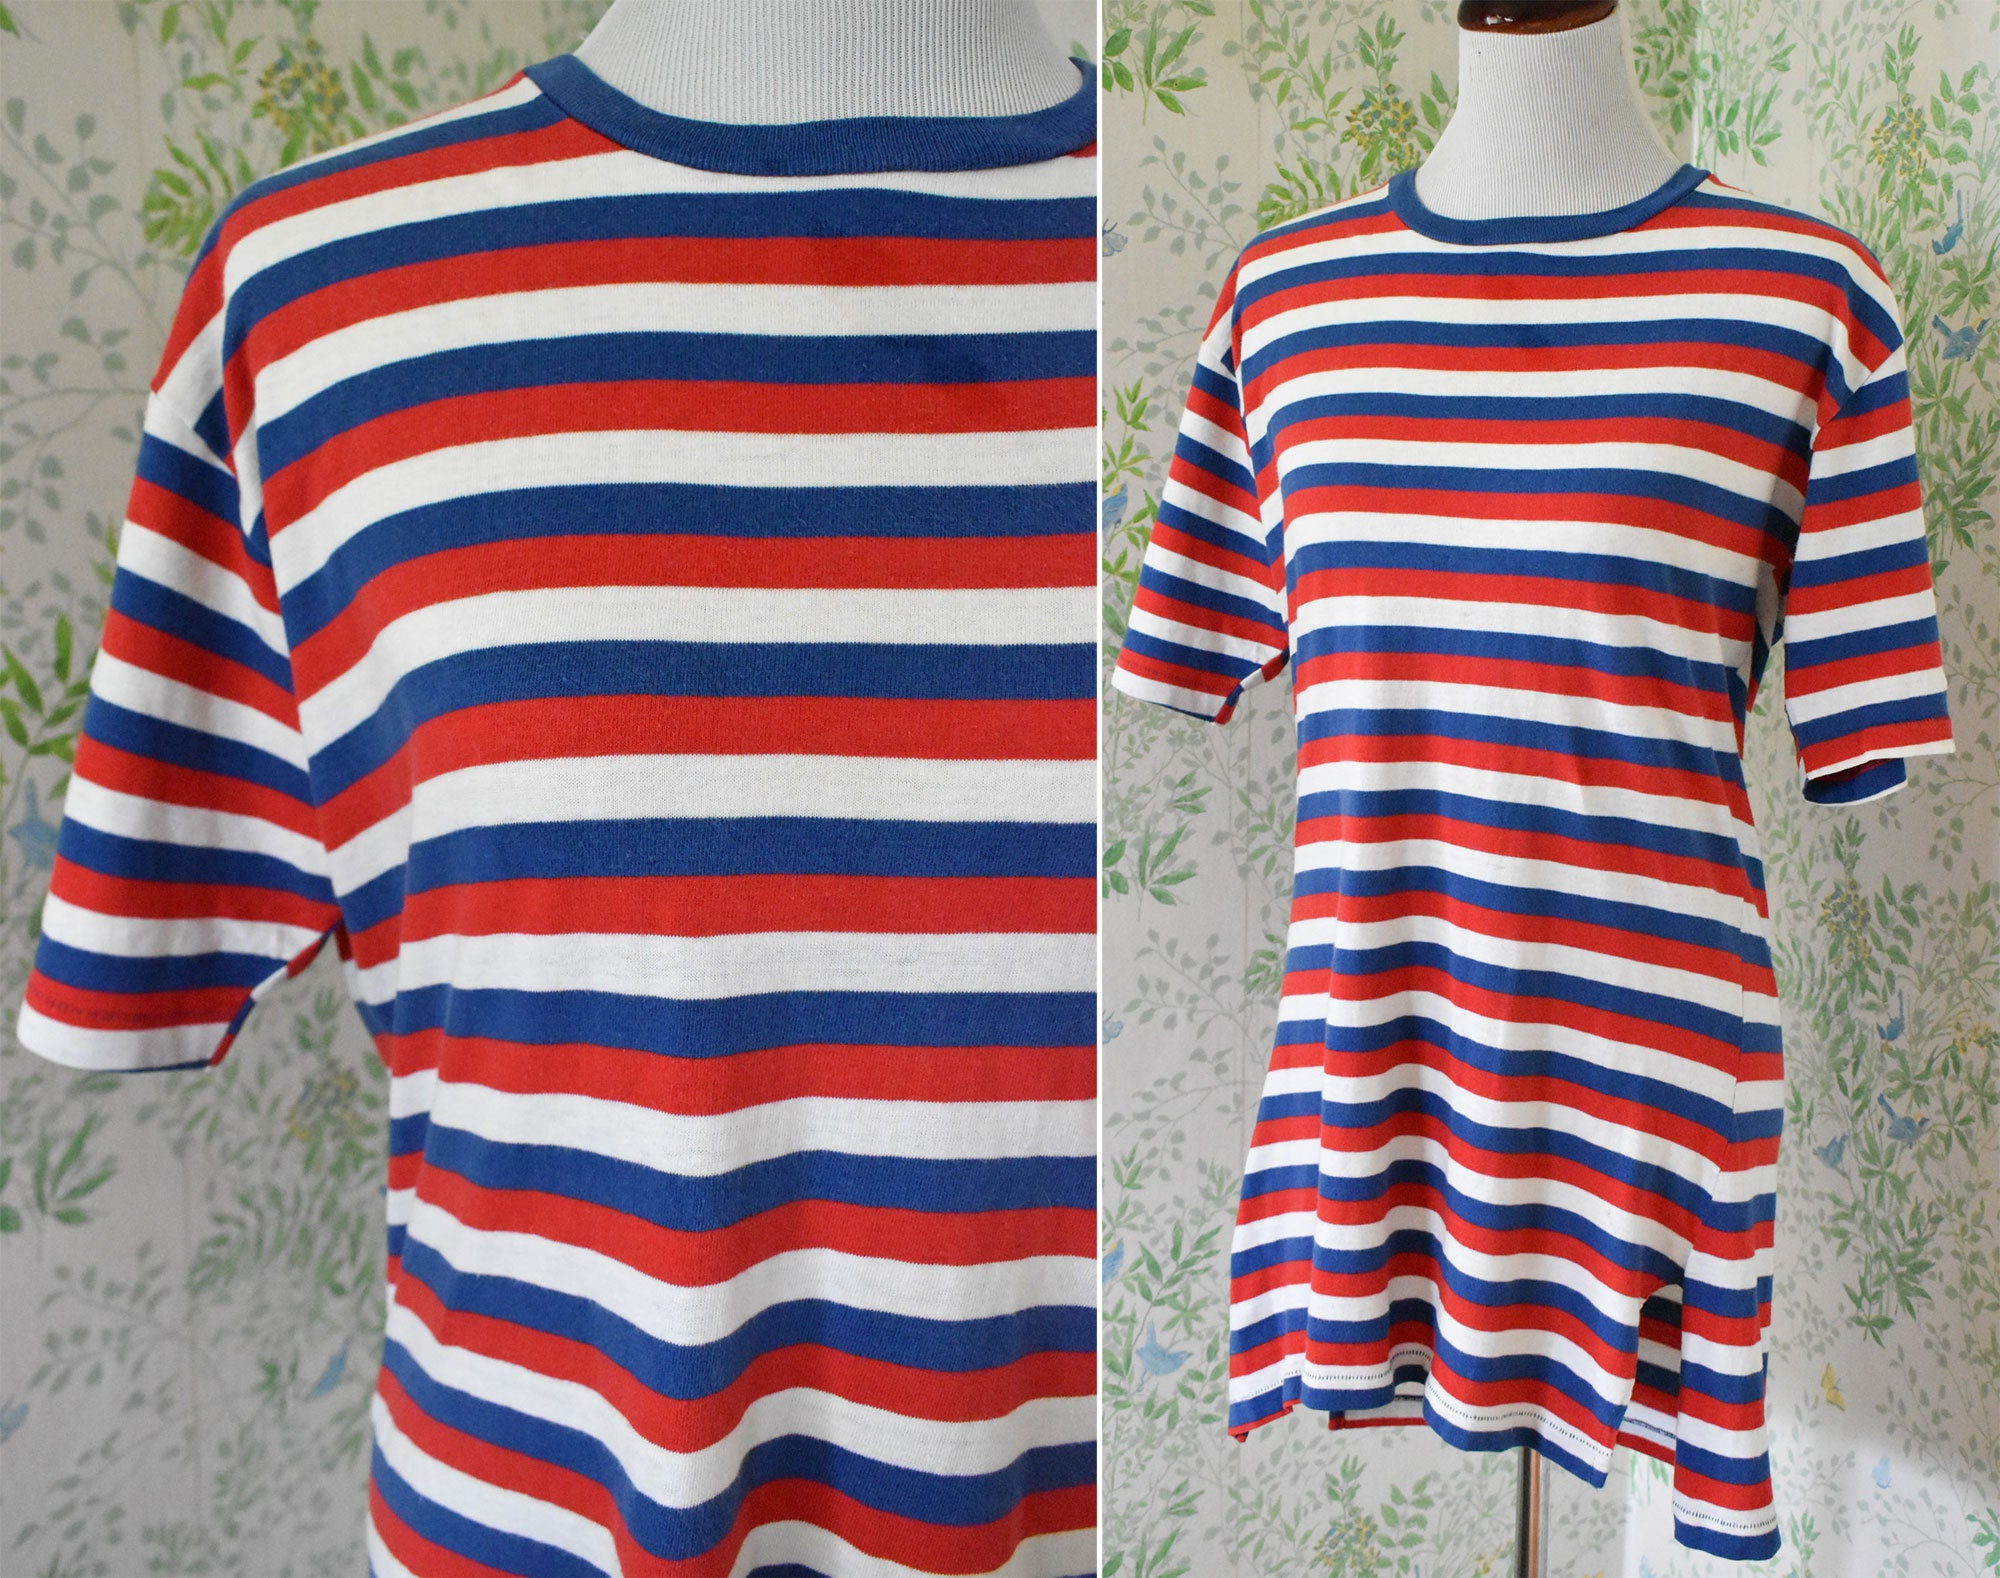 1940s Men's Shirts, Sweaters, Vests July Fourth 1940s 50s Vintage Red White  Blue Striped Long T Shirt with Short Sleeves  Hand Stitching  By Reis Whirl About $18.00 AT vintagedancer.com